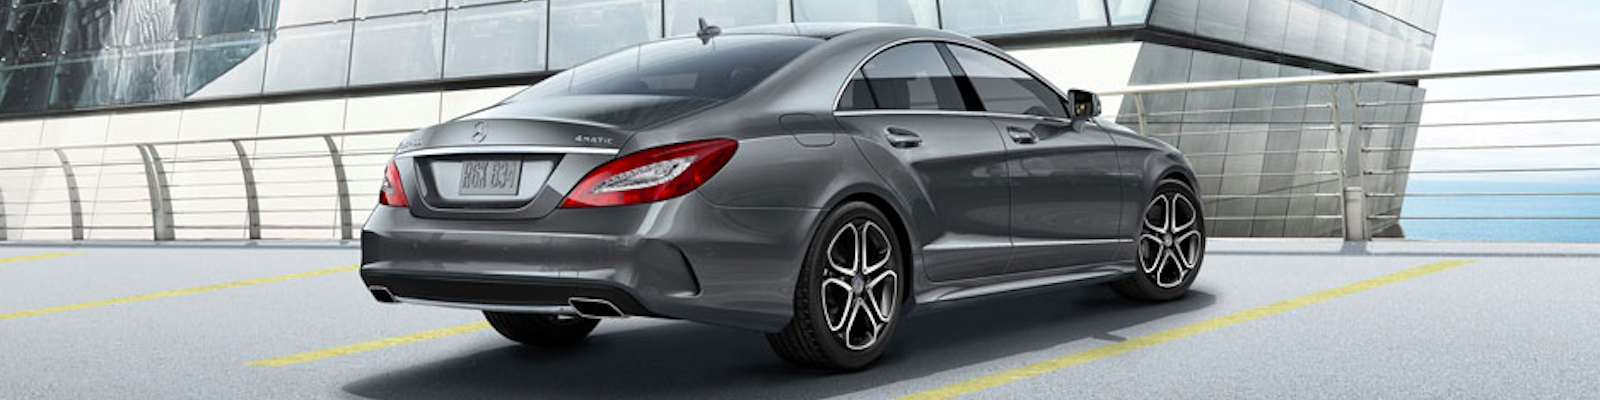 Mercedes-Benz CLS Coupe rear